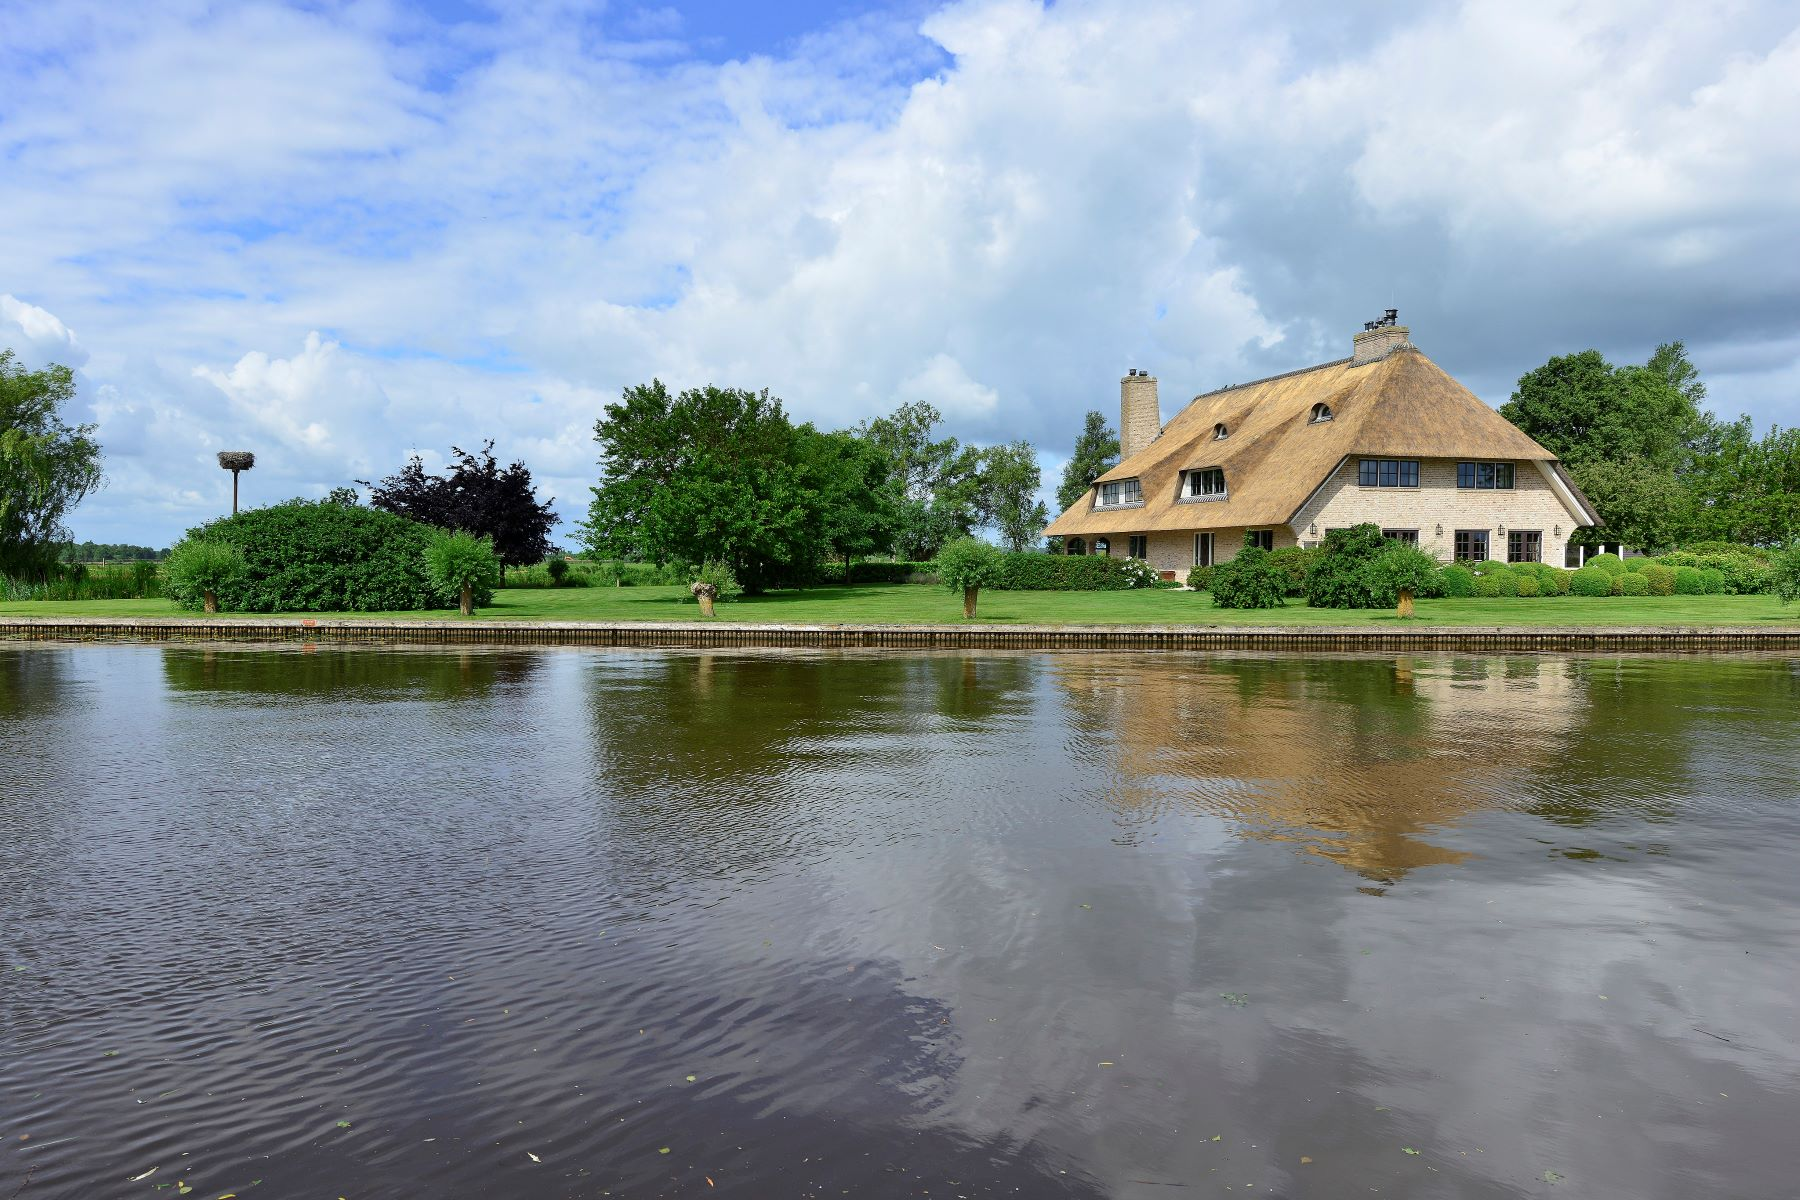 Single Family Homes for Active at Mansion with Private Berth and Boathouse Wetering, Overijssel Netherlands